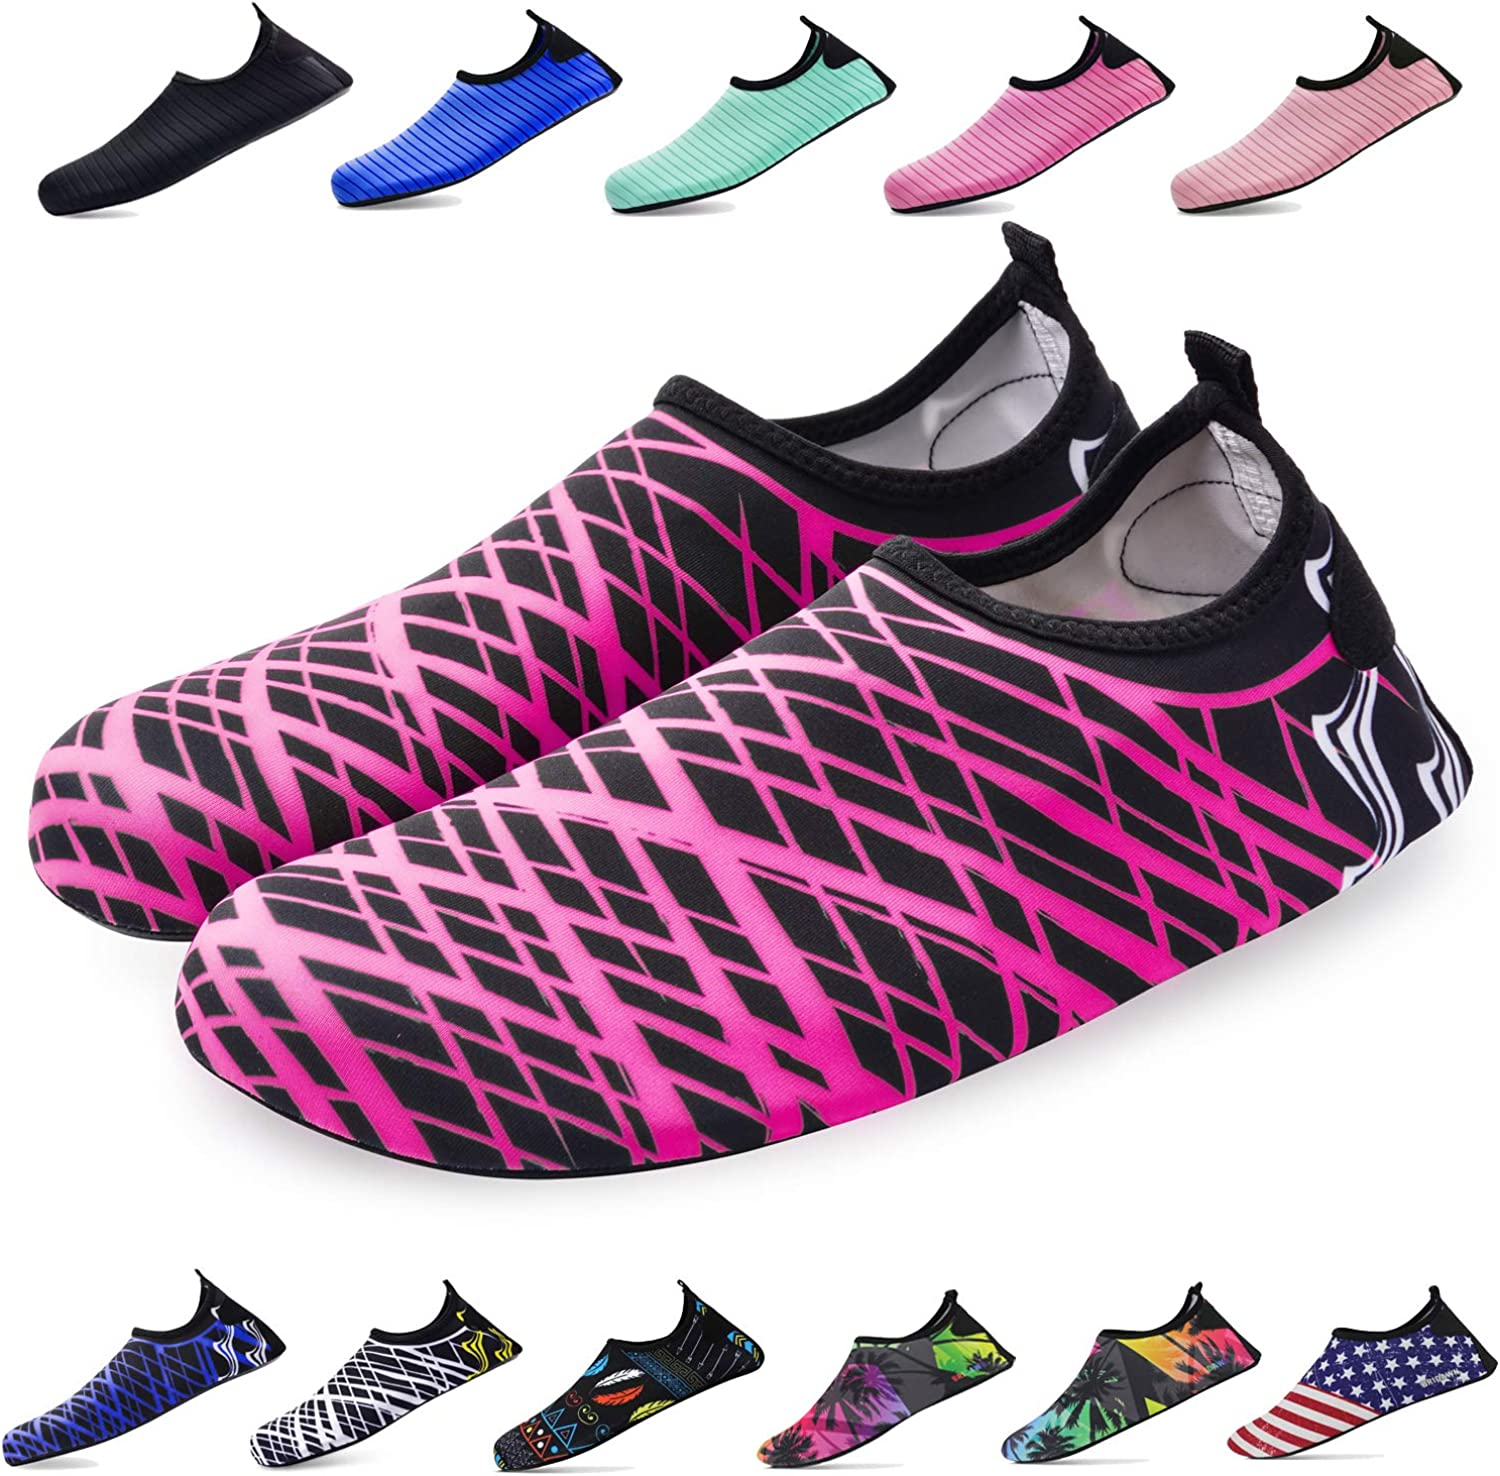 Quick-Dry Socks Barefoot Shoes bridawn Water Shoes for Women and Men